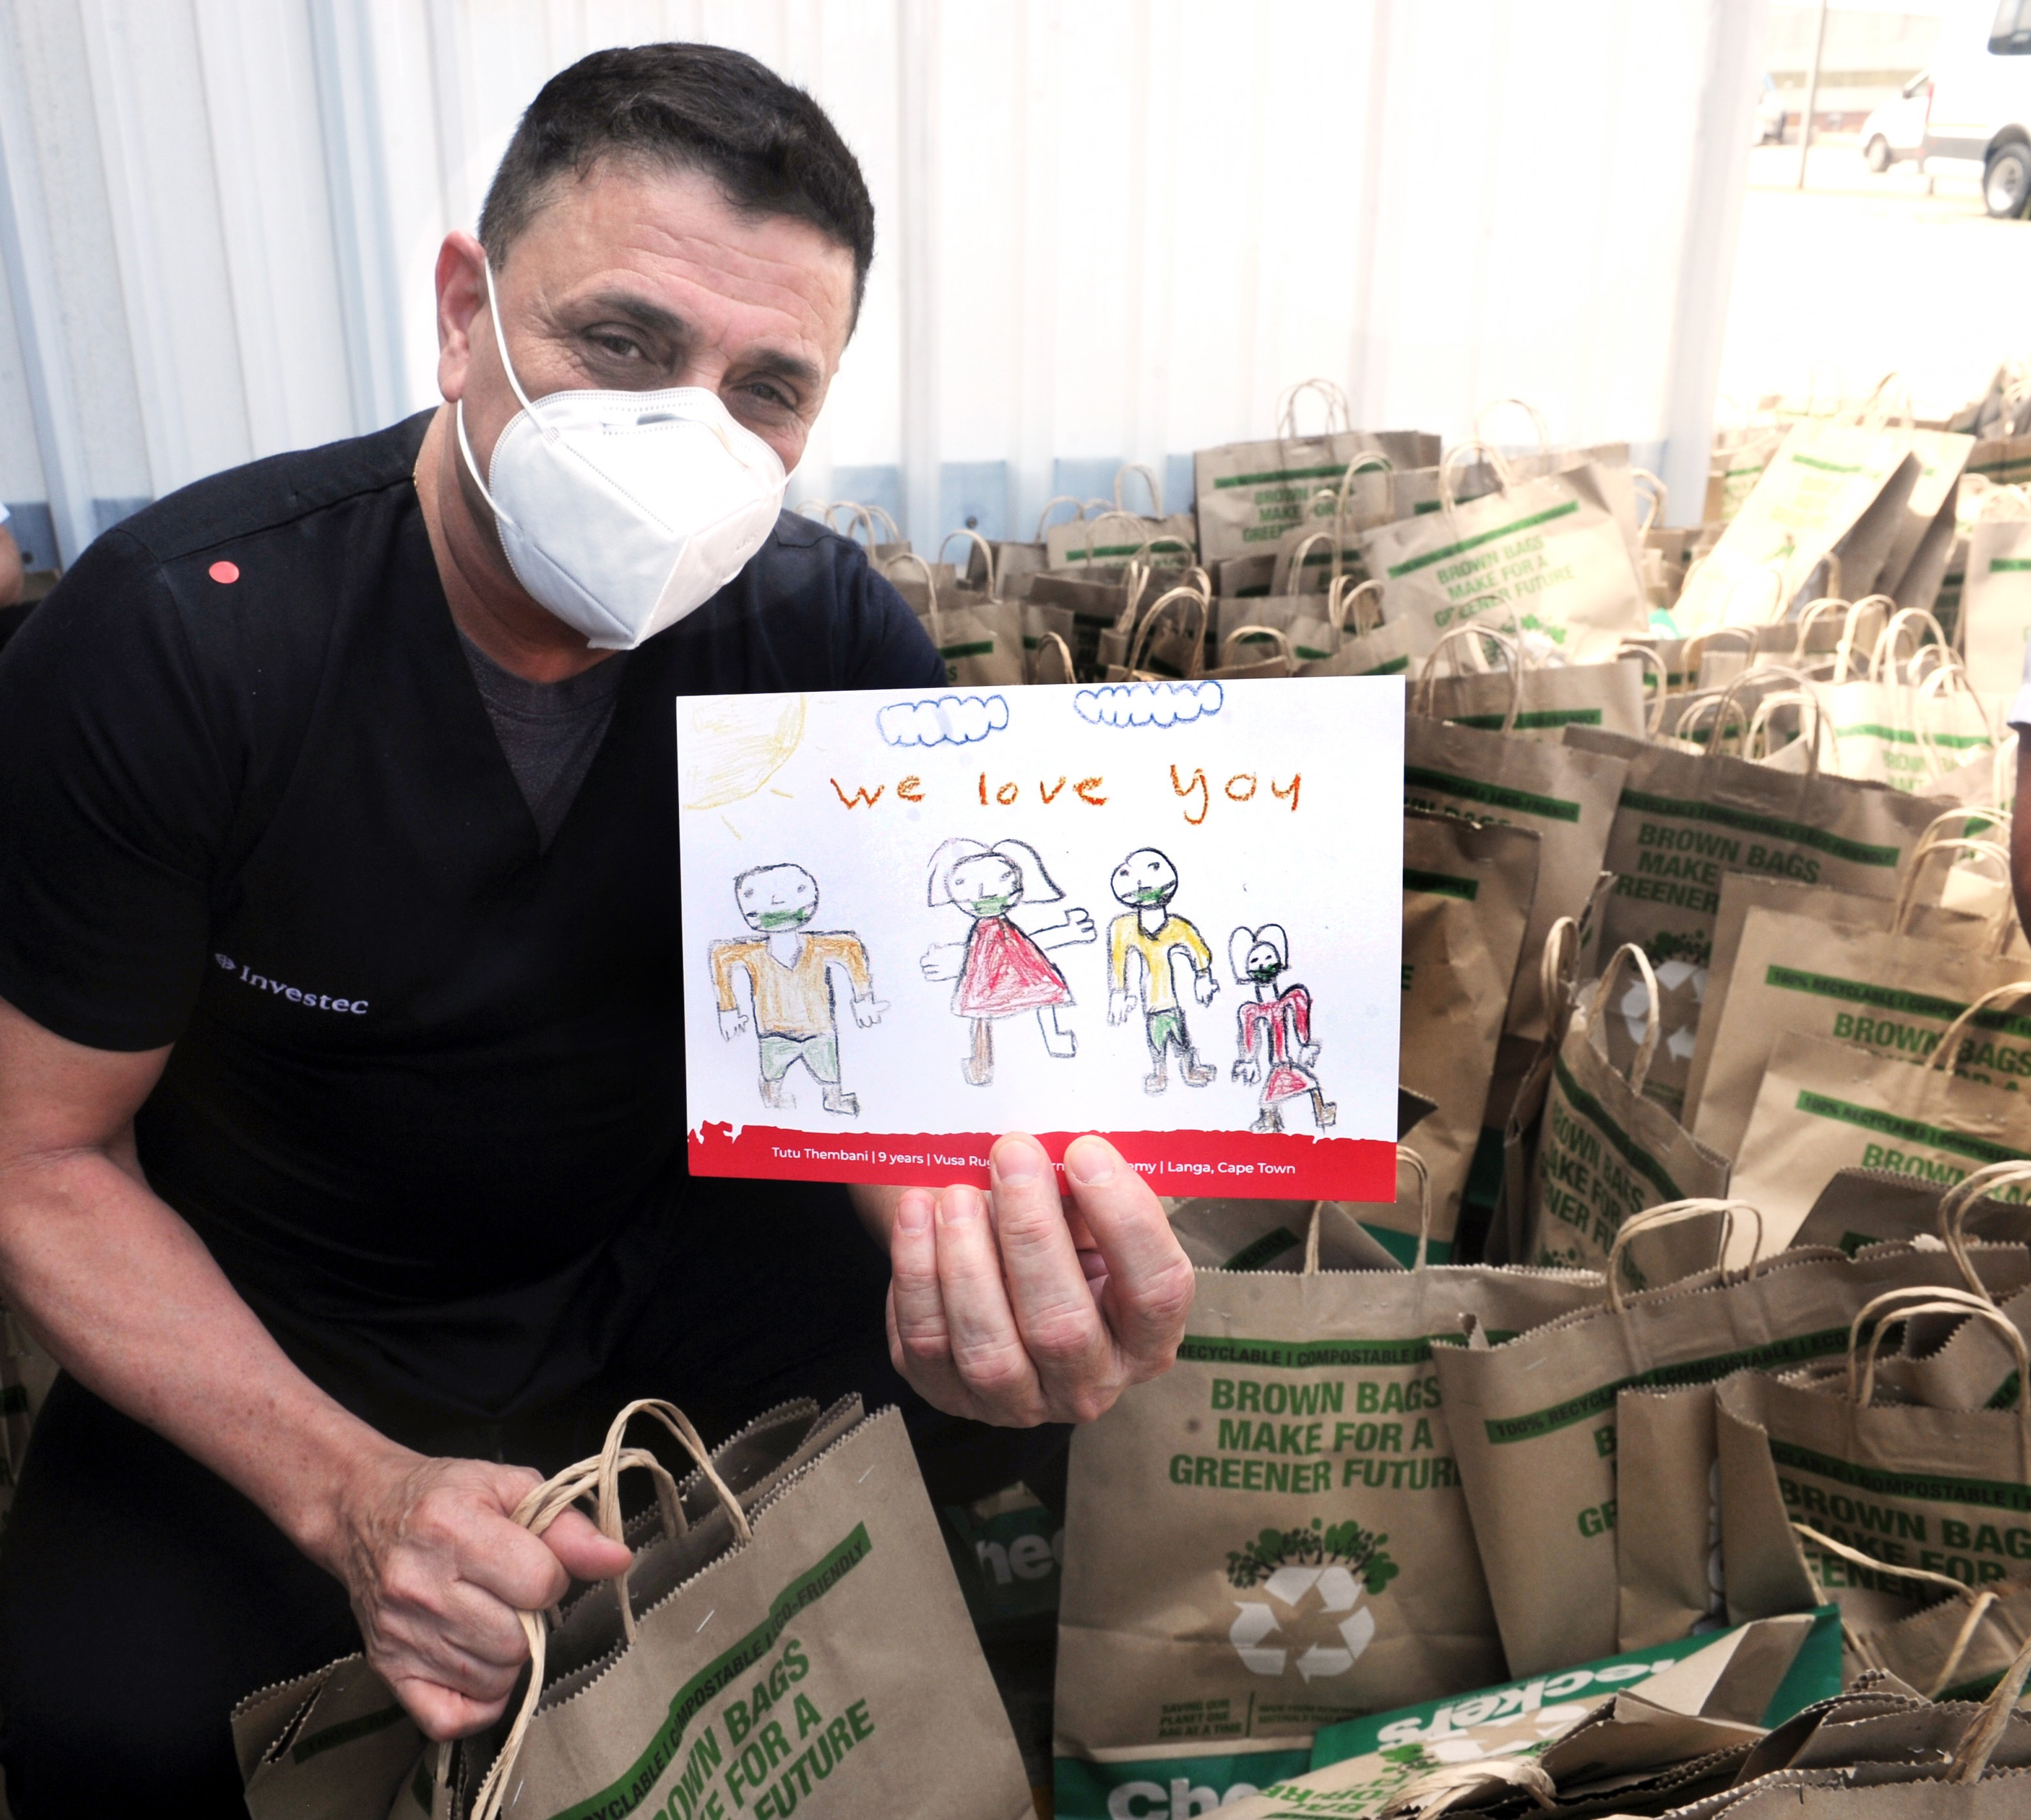 Shoprite care packages donated to healthcare workers in Uitenhage